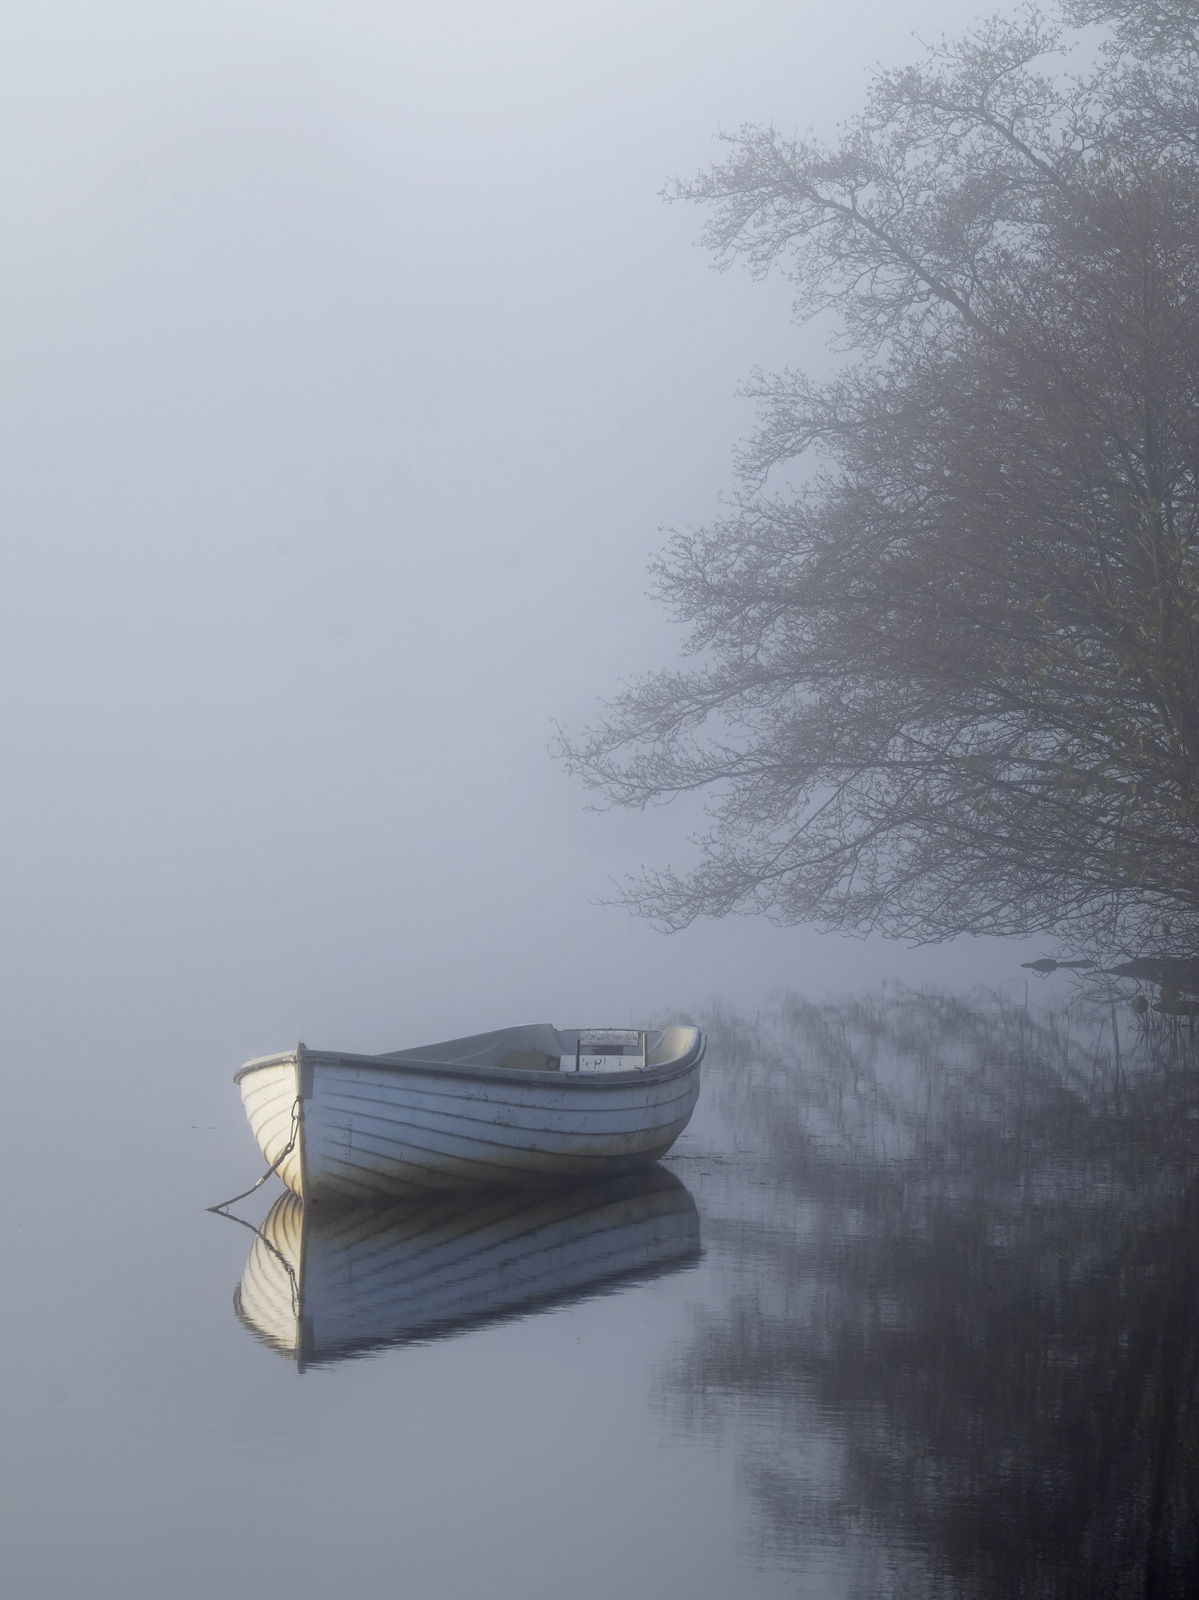 Another of Loch Rusky with its small collection of pale blue wooden row boats that look so charming on a still misty day.&nbsp...